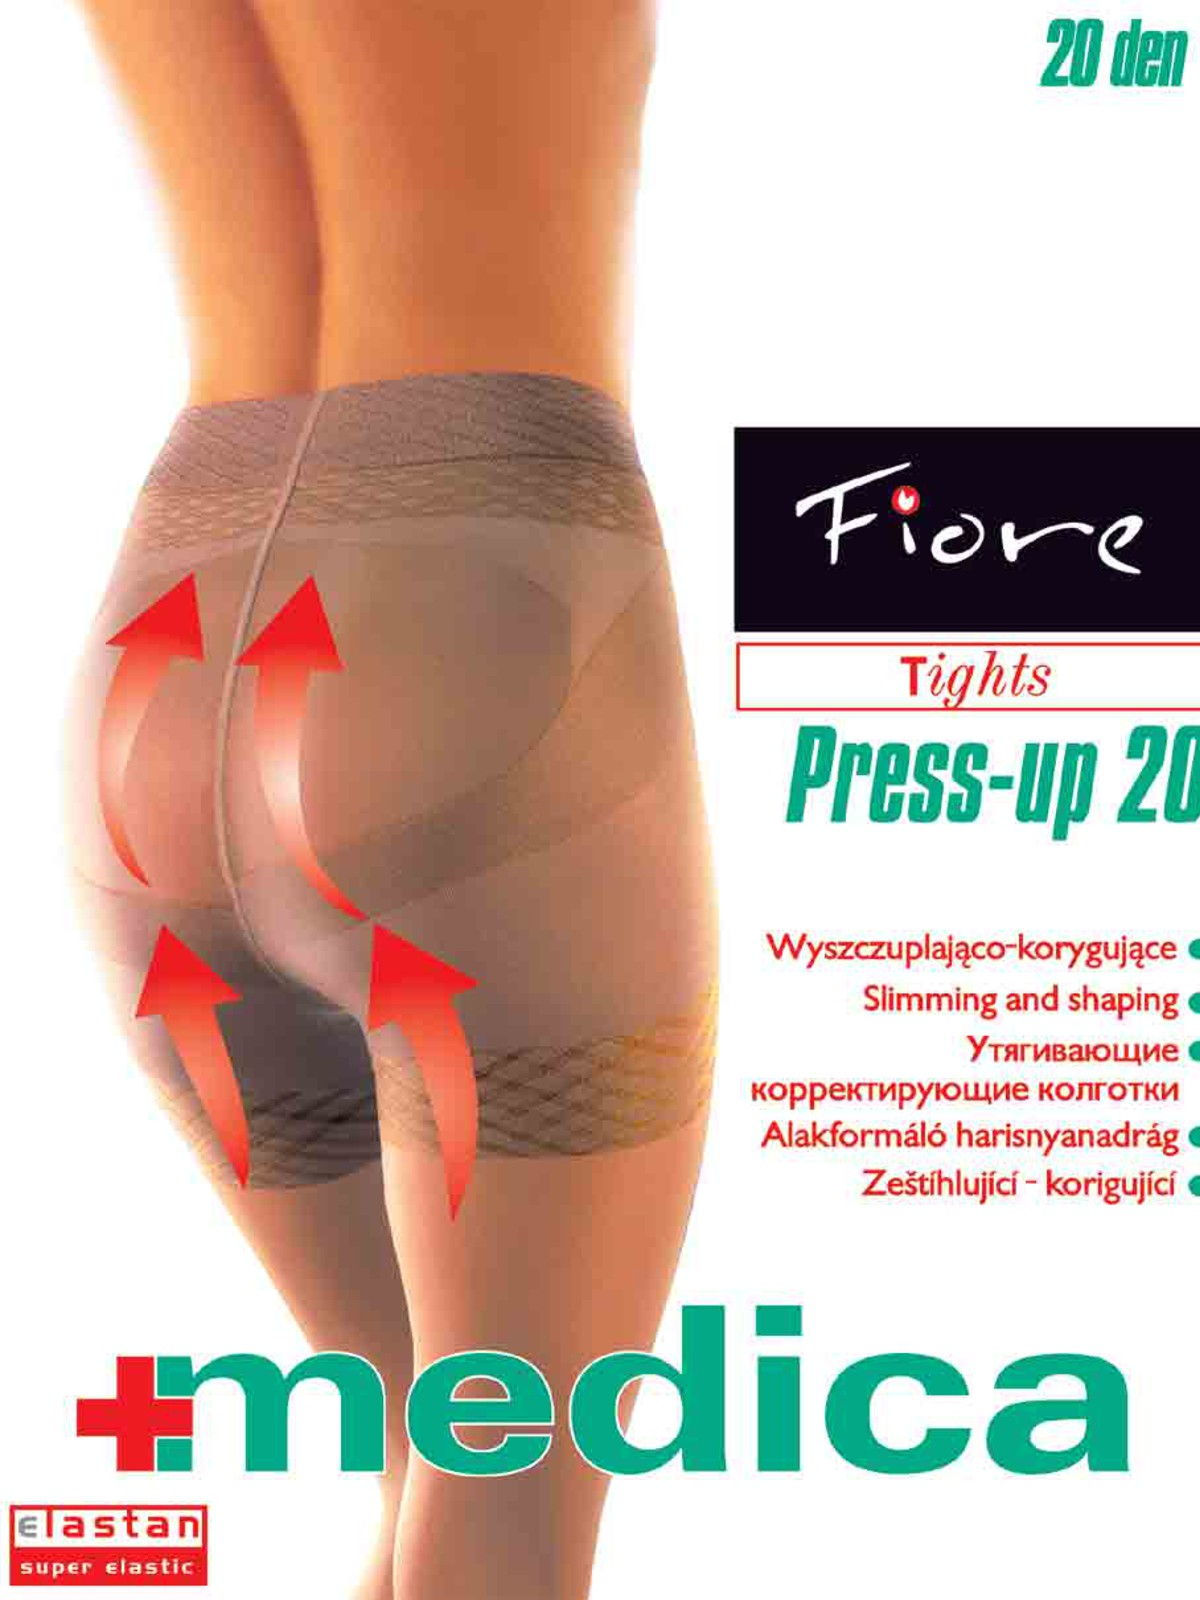 Ciorapi Fiore PRESS-UP-20